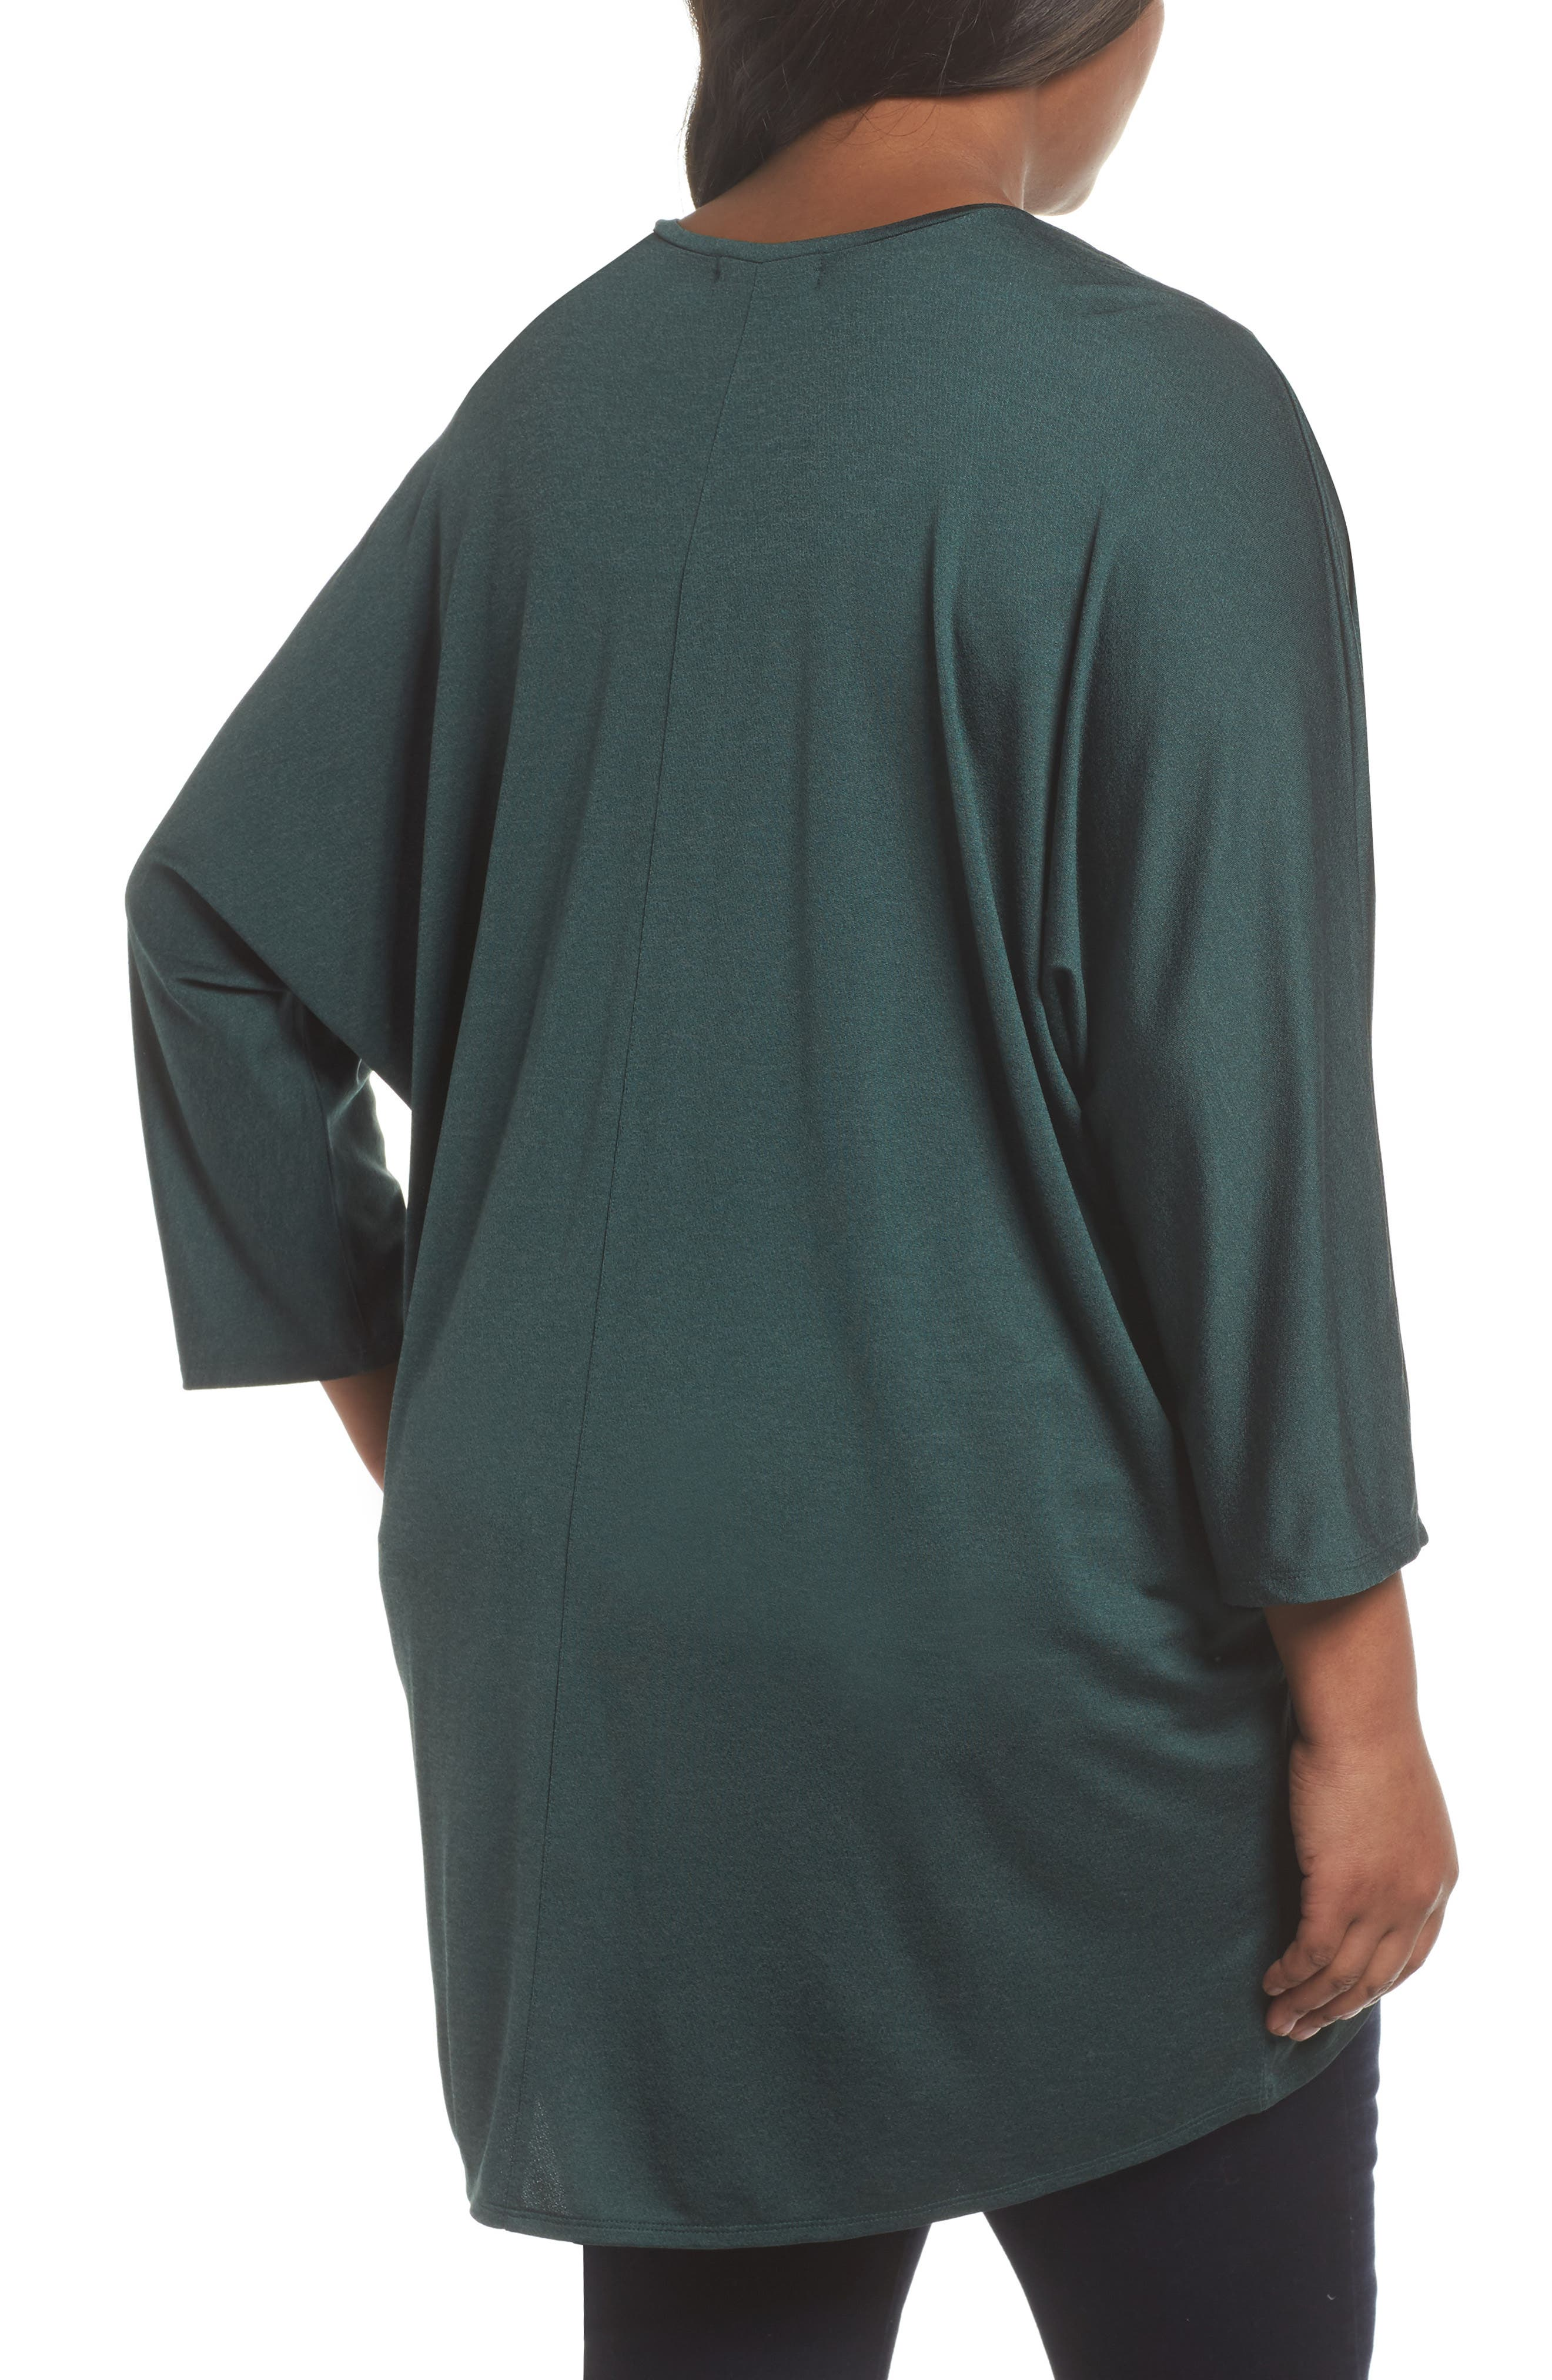 Cocoon Cardigan,                             Alternate thumbnail 2, color,                             Green Bug